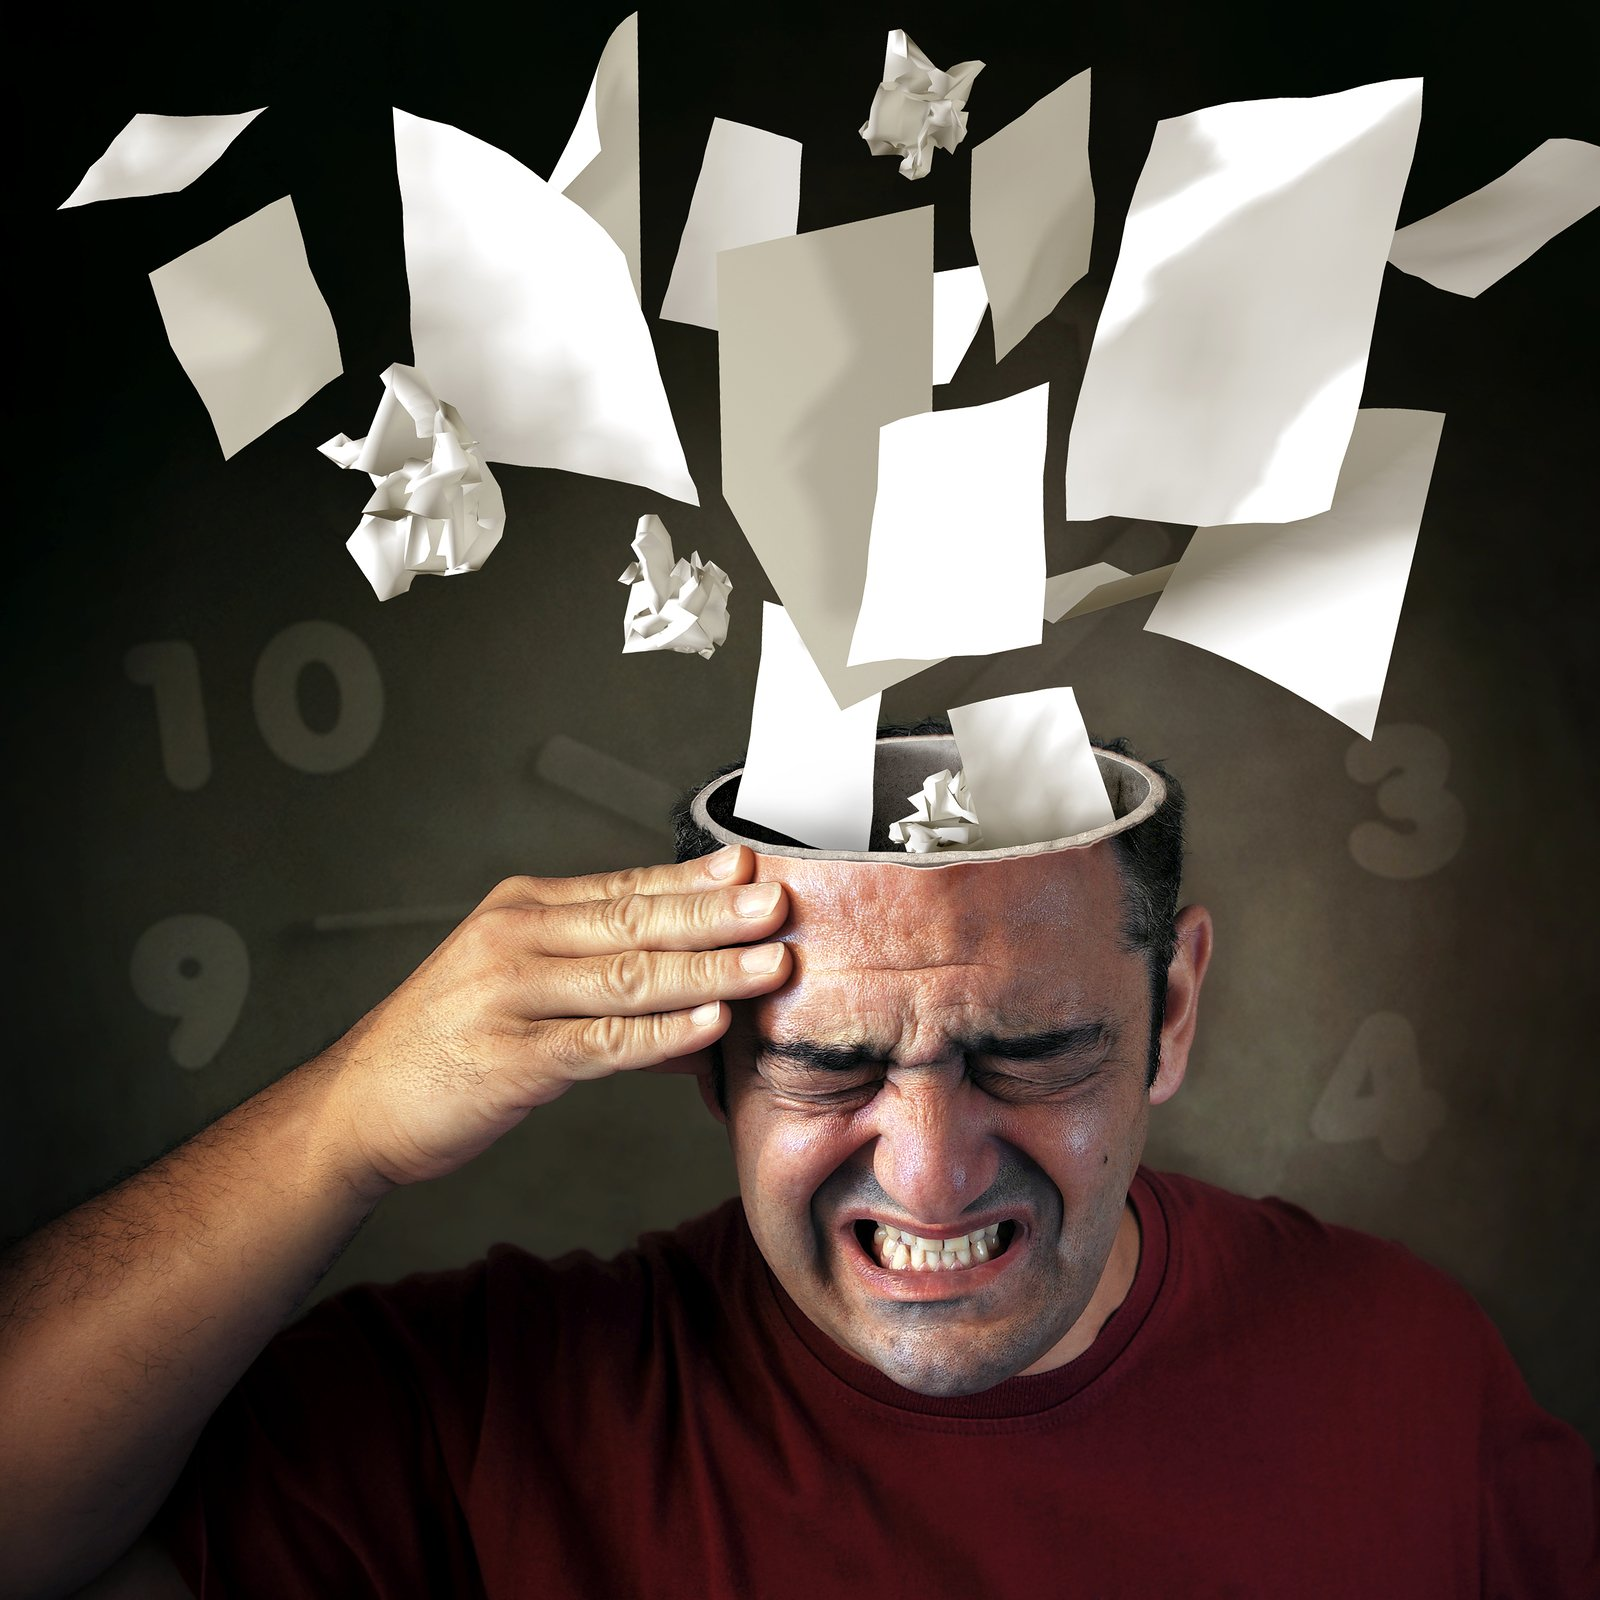 Man with hand to his head, which is open with papers, numbers and wads of paper flying out of his brain. He looks like he needs skills for coping with stress and stress management. Stress counseling in mountainside, NJ 07092 & and stress management in westfield, nj 07090. You can get online counseling for stress management in New Jersey here!